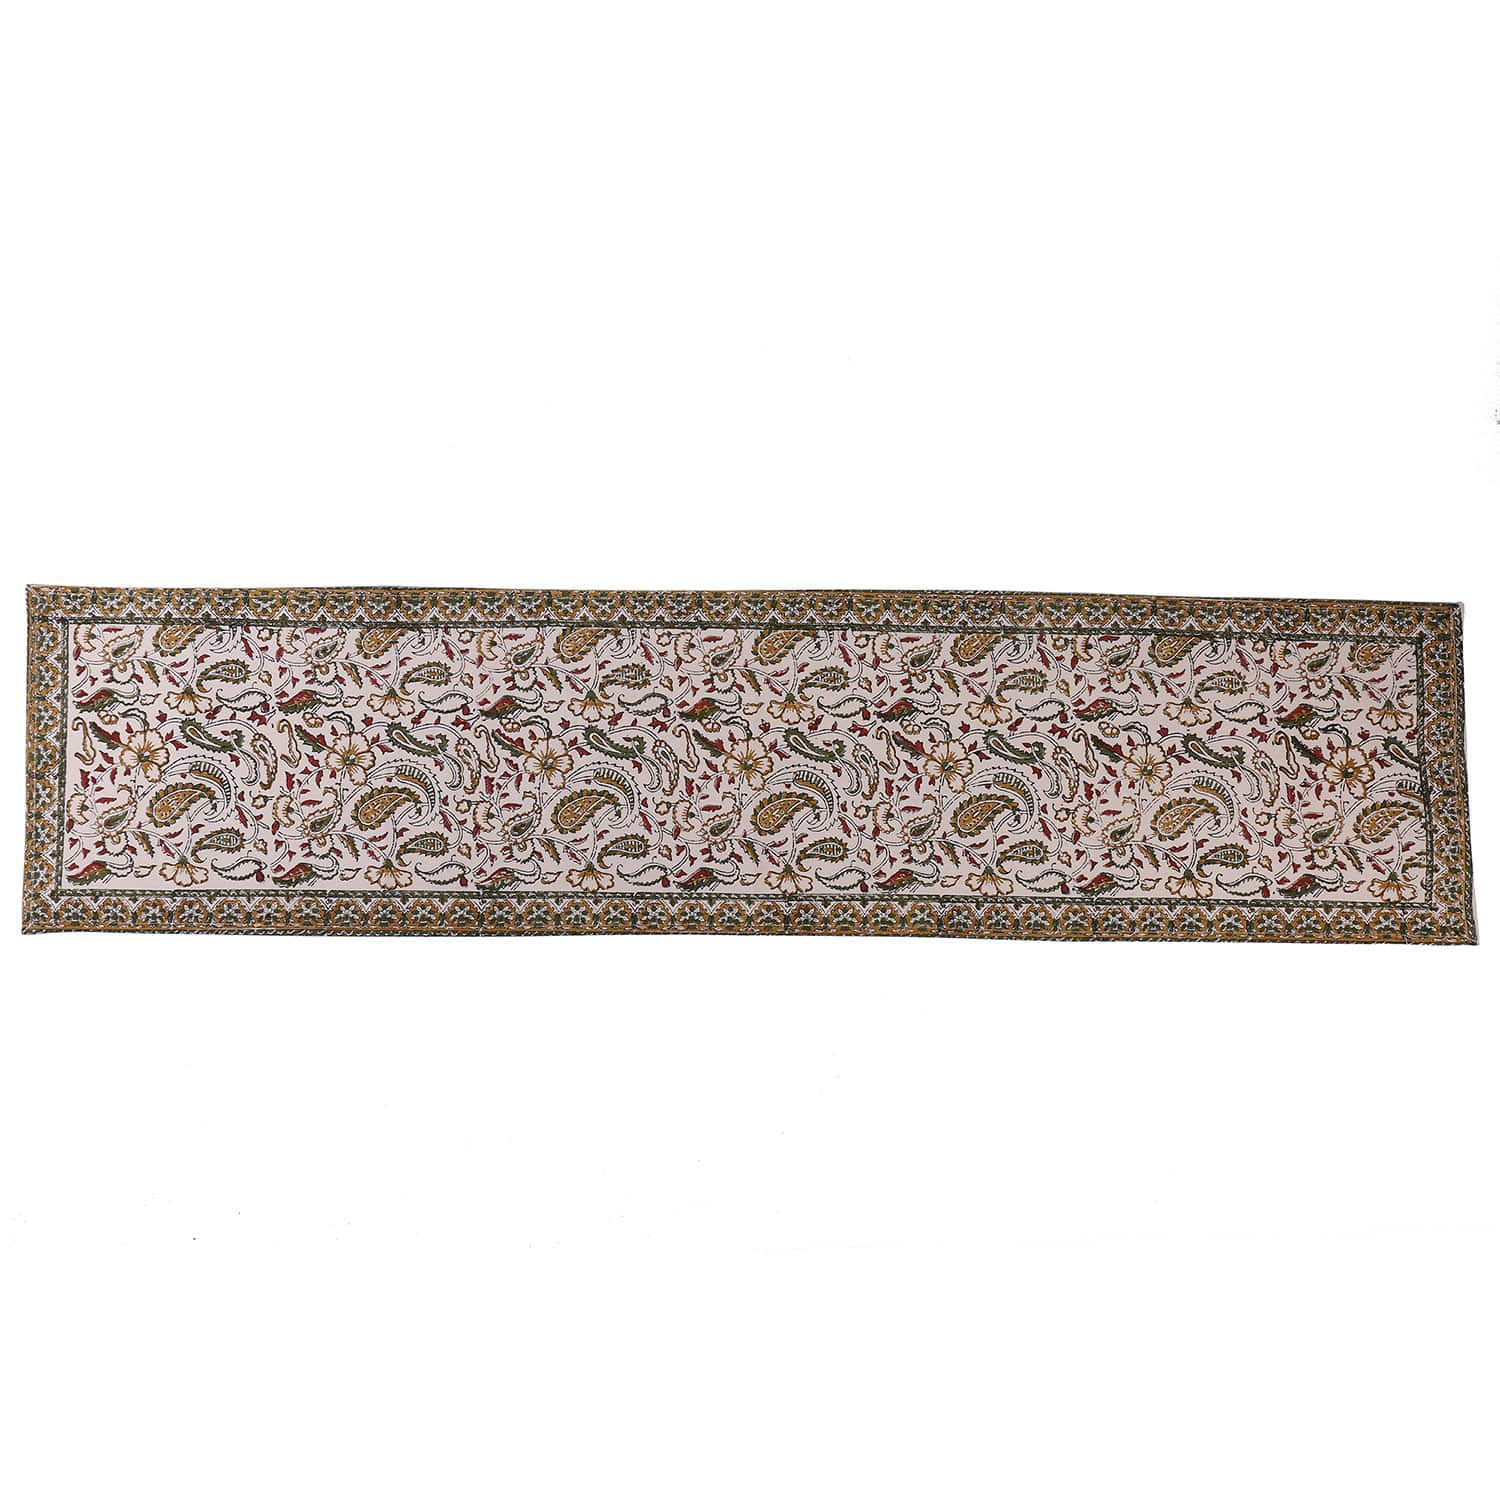 Cotton Floral & Paisley Table Runner - 42